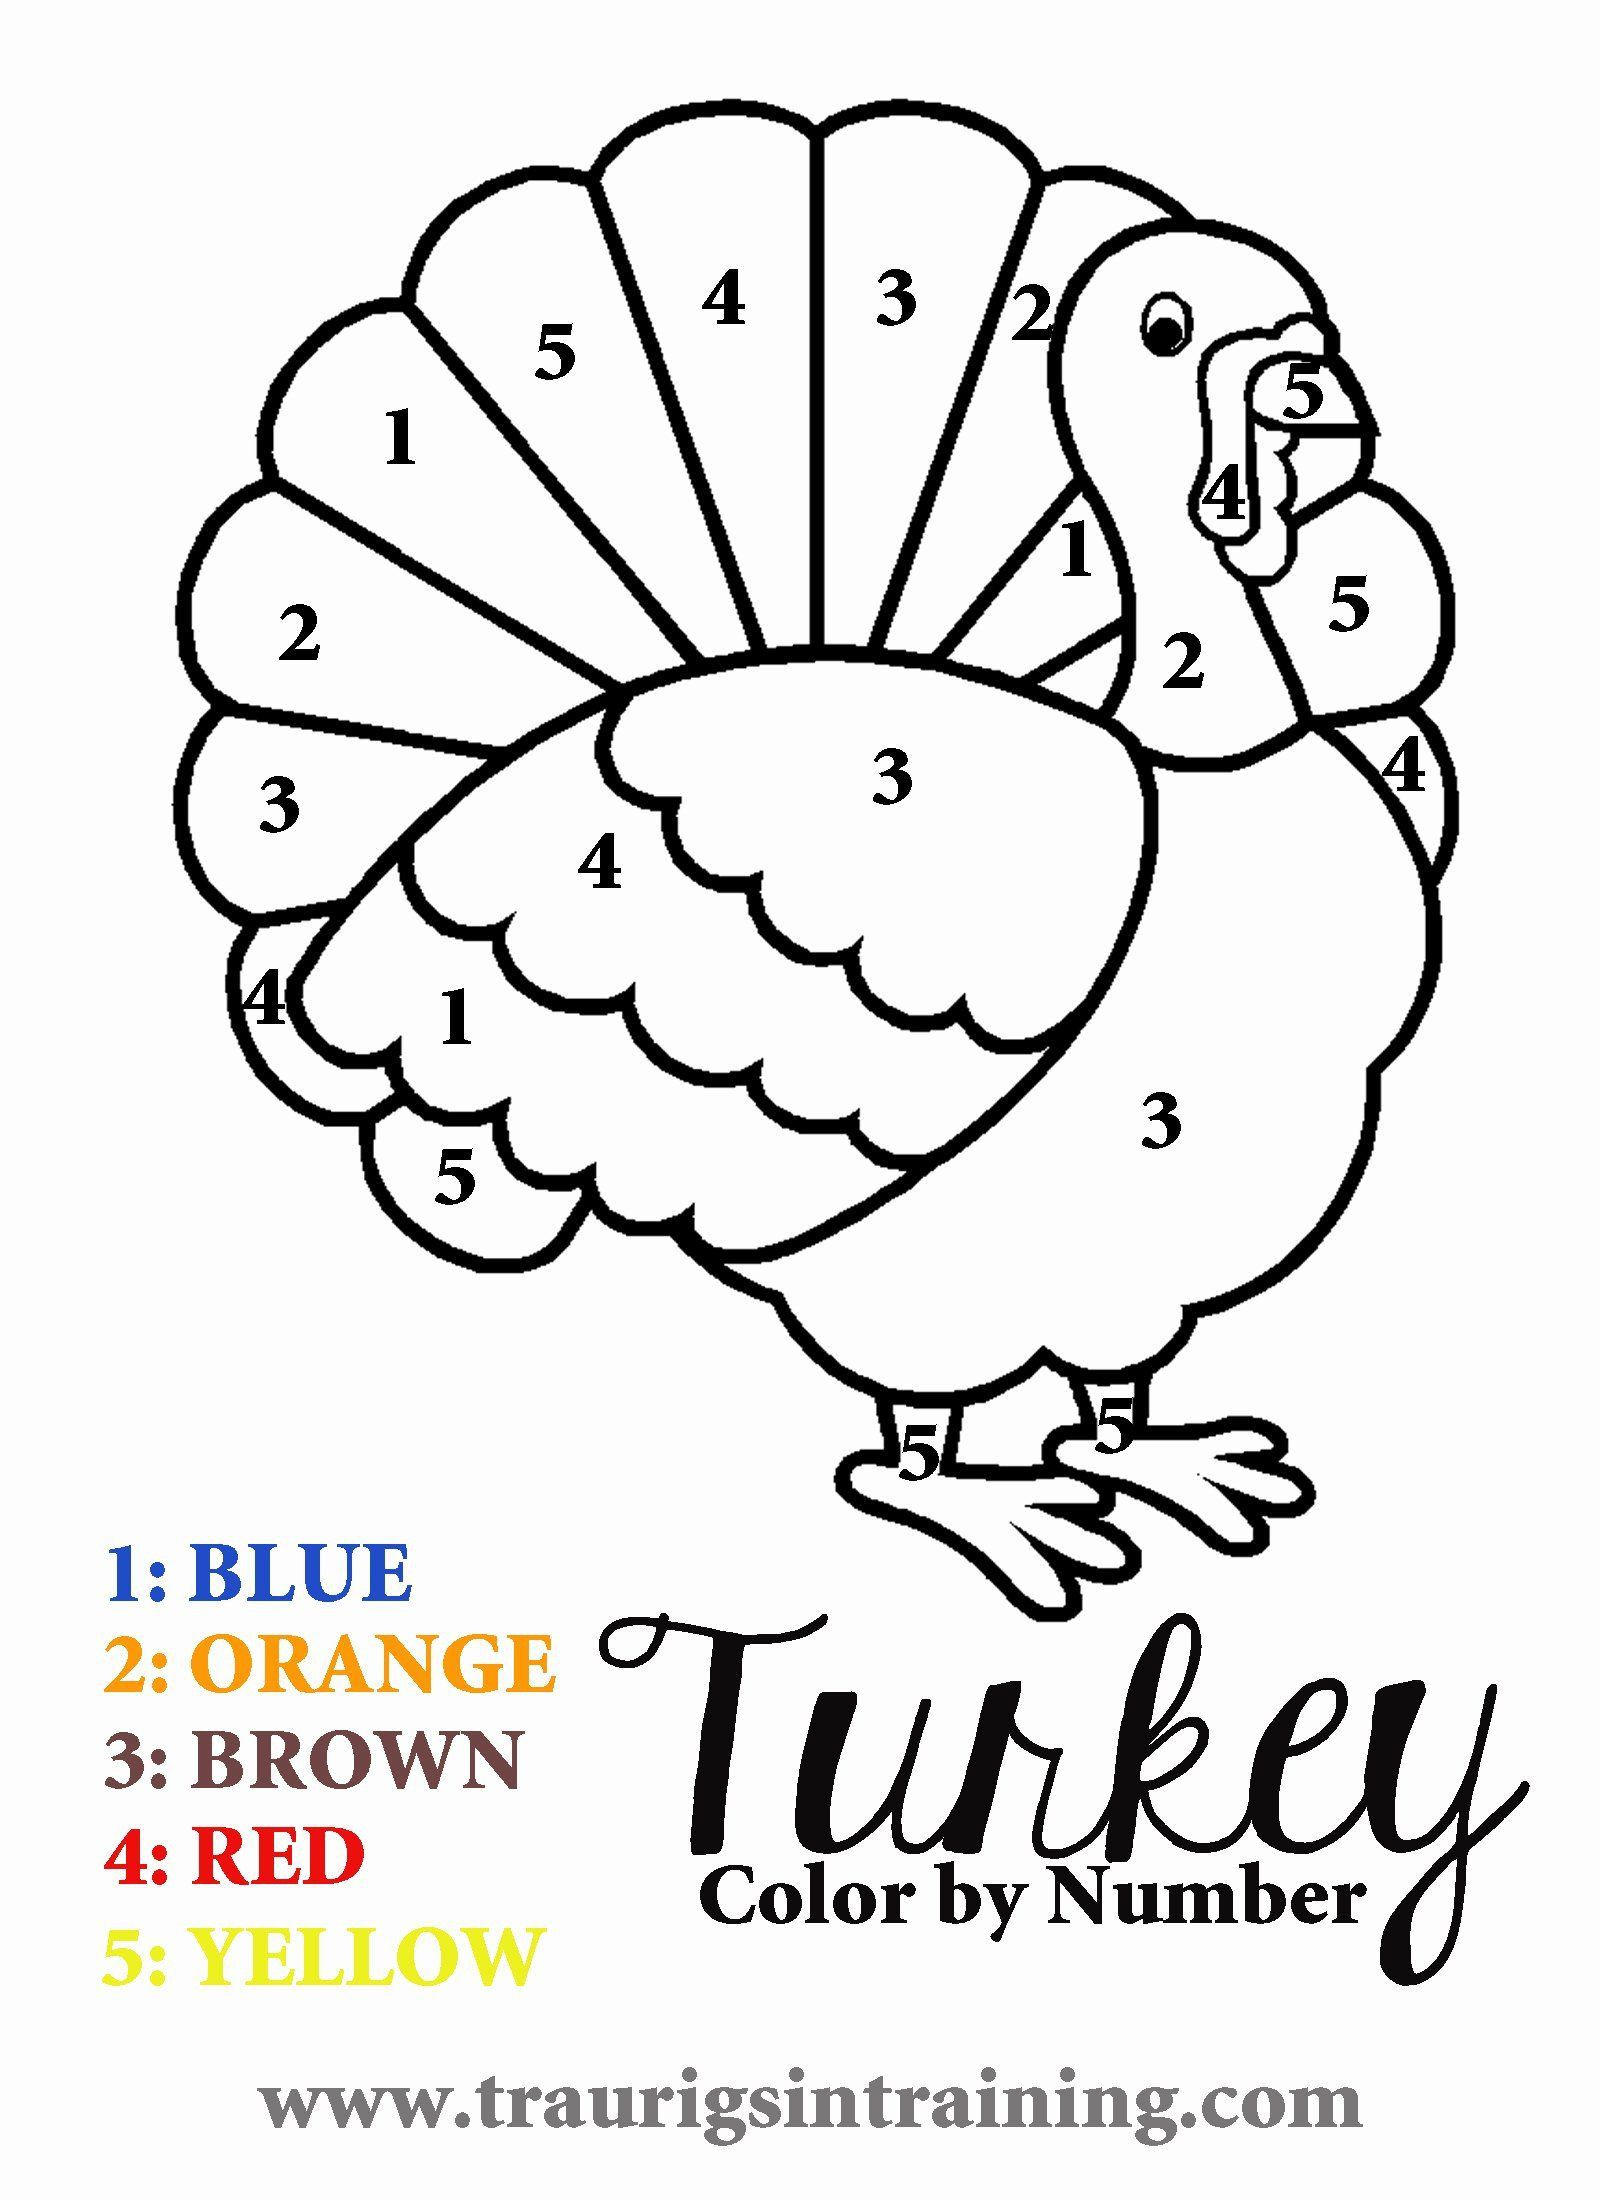 Turkey Coloring Activity Pages. Turkey is one type of